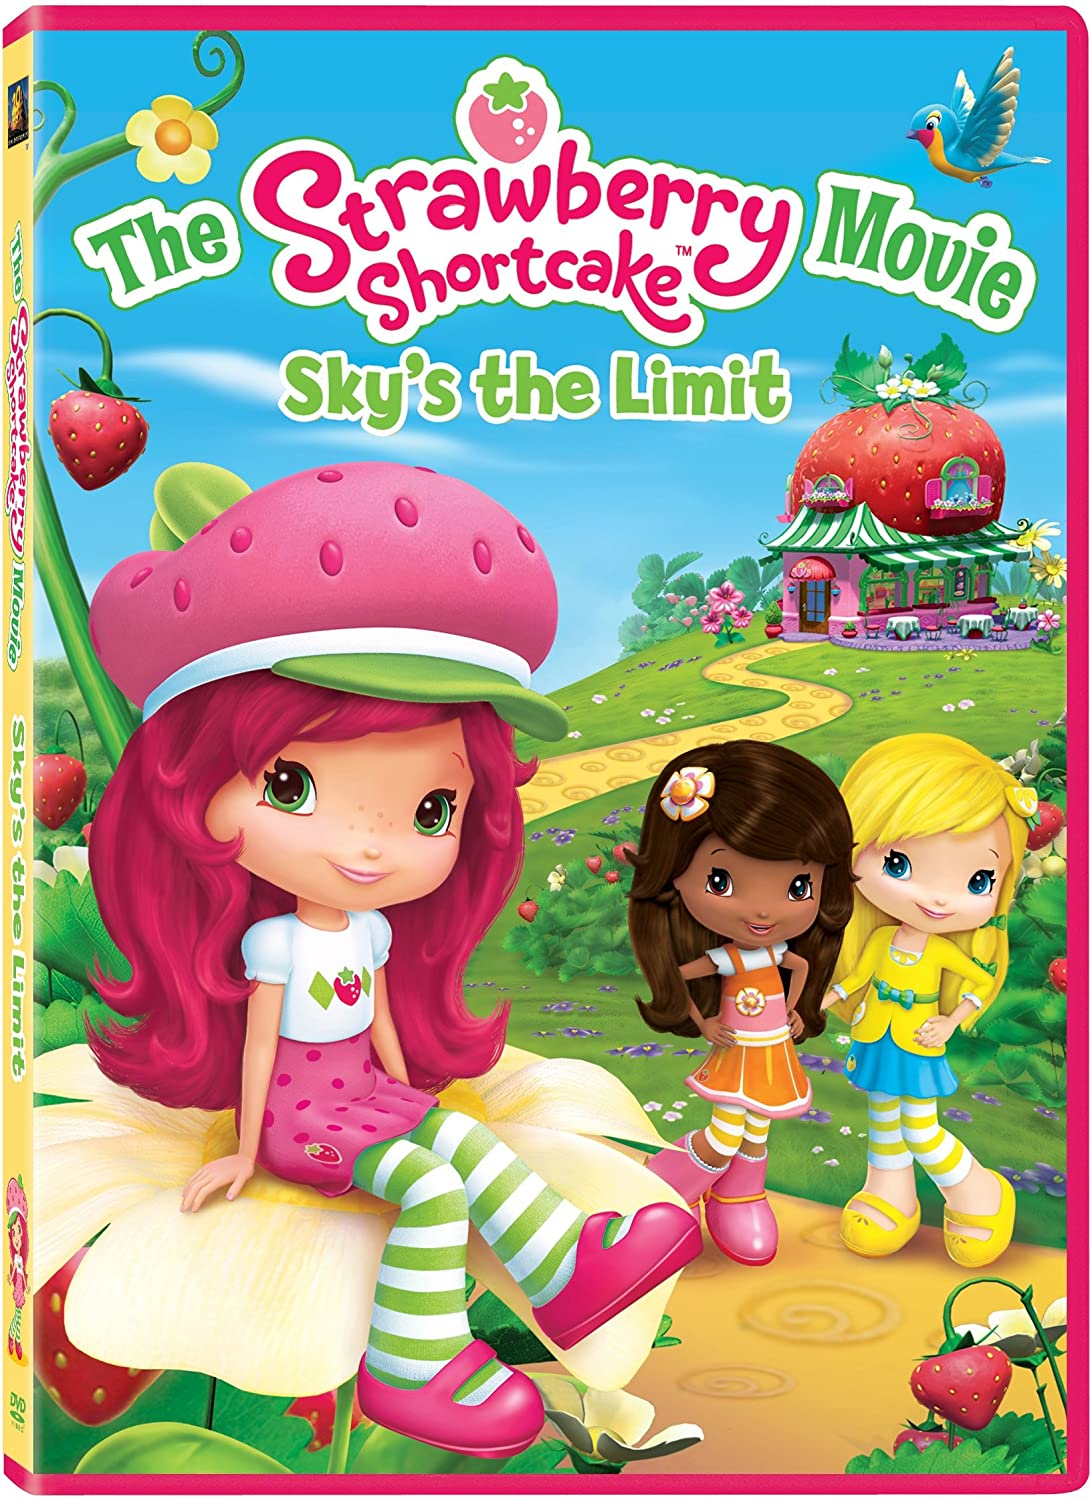 Strawberry Shortcake Movie: Sky's the Limit 5458526 Cartoons & Animation Animated Anime & Manga